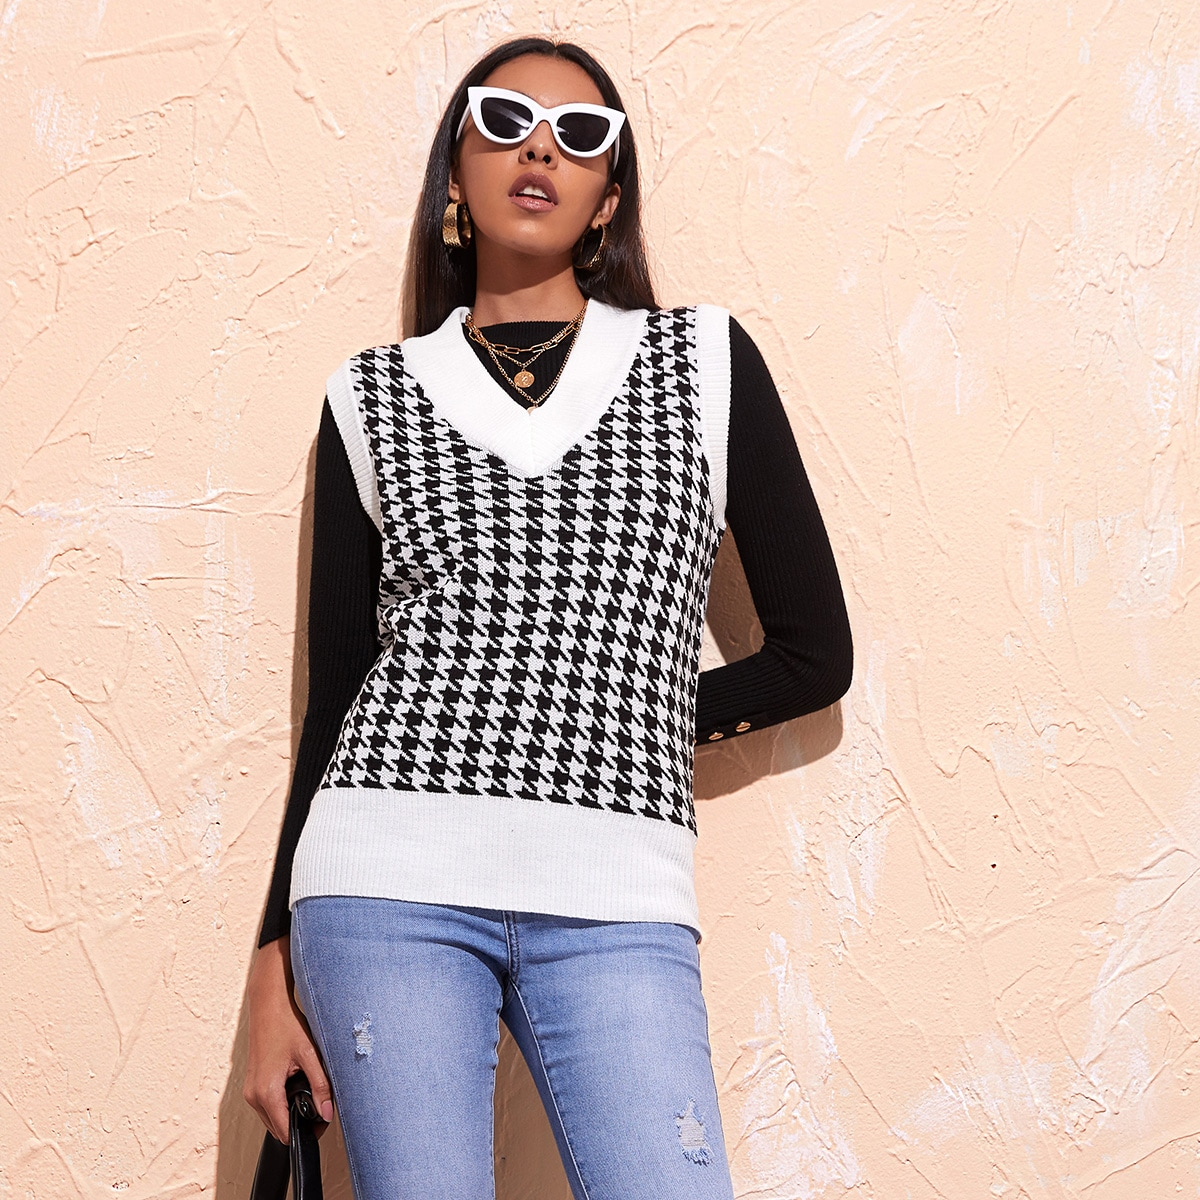 V Neck Houndstooth Sweater Vest, SHEIN  - buy with discount